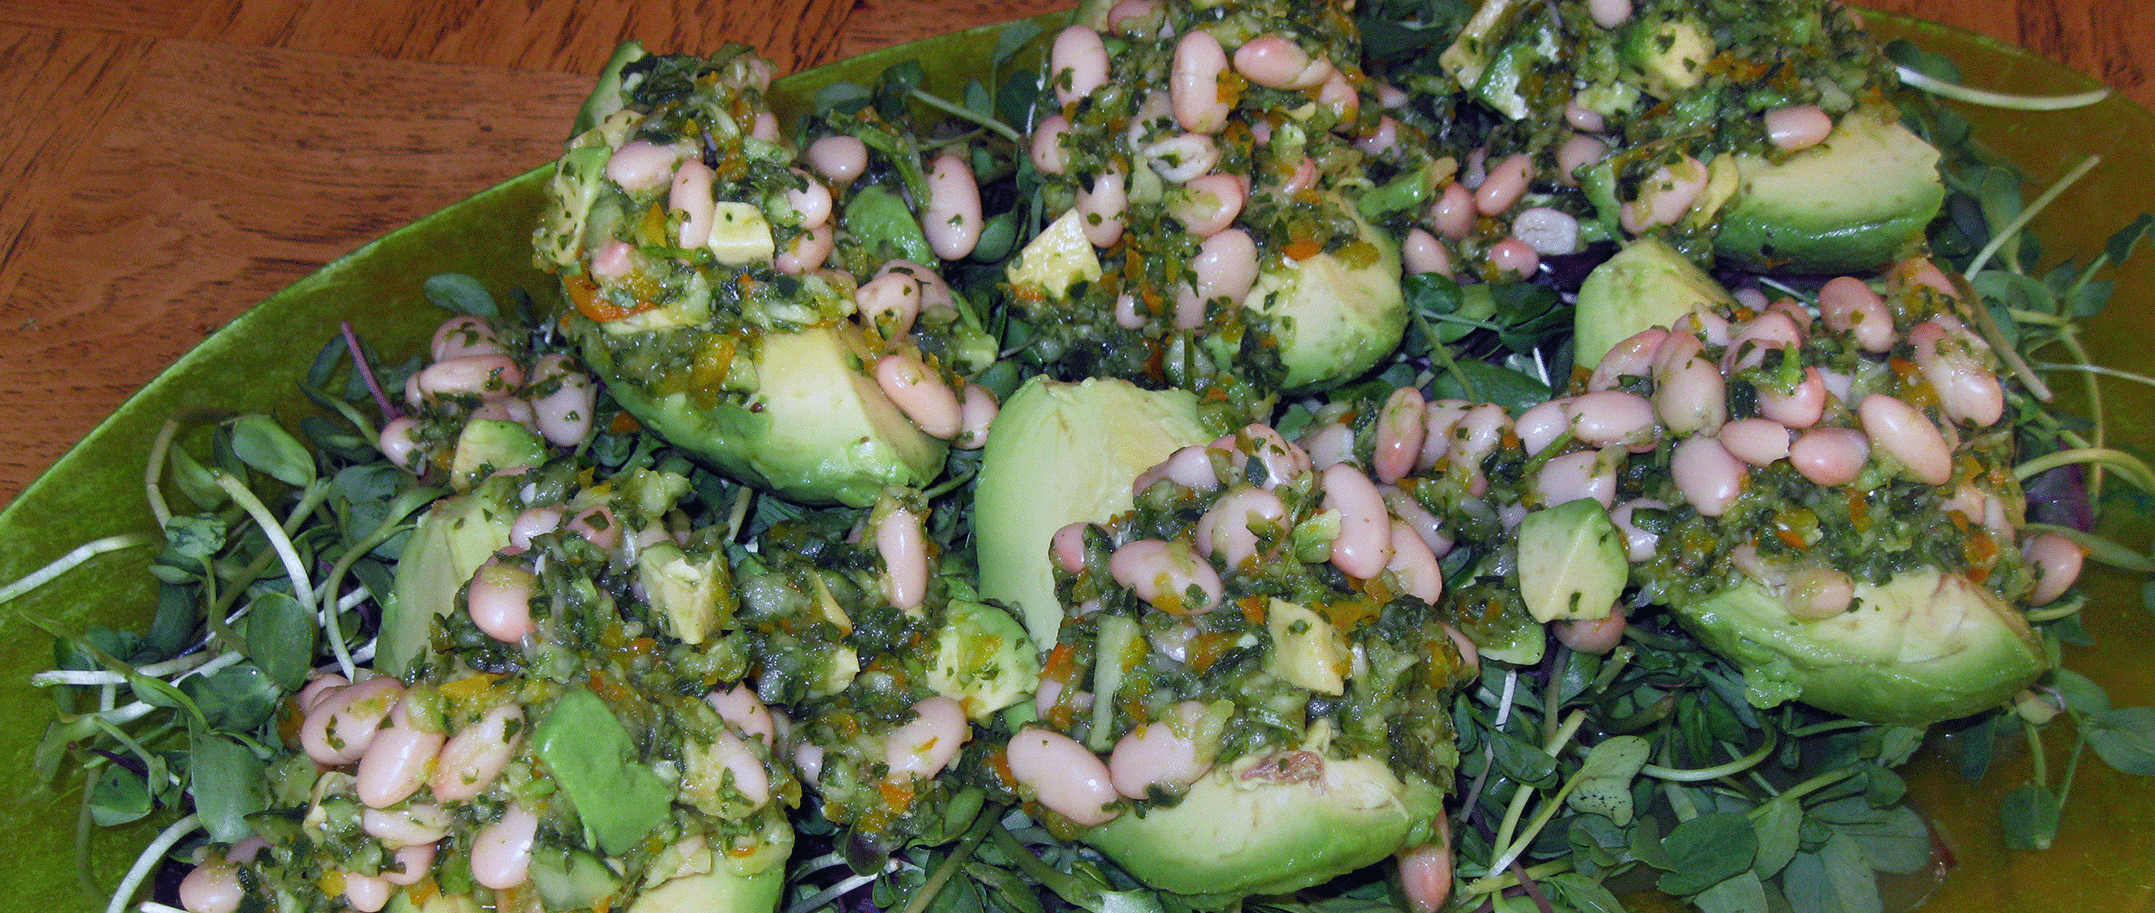 Platter of Avocados stuffed with White Beans and Green Salsa